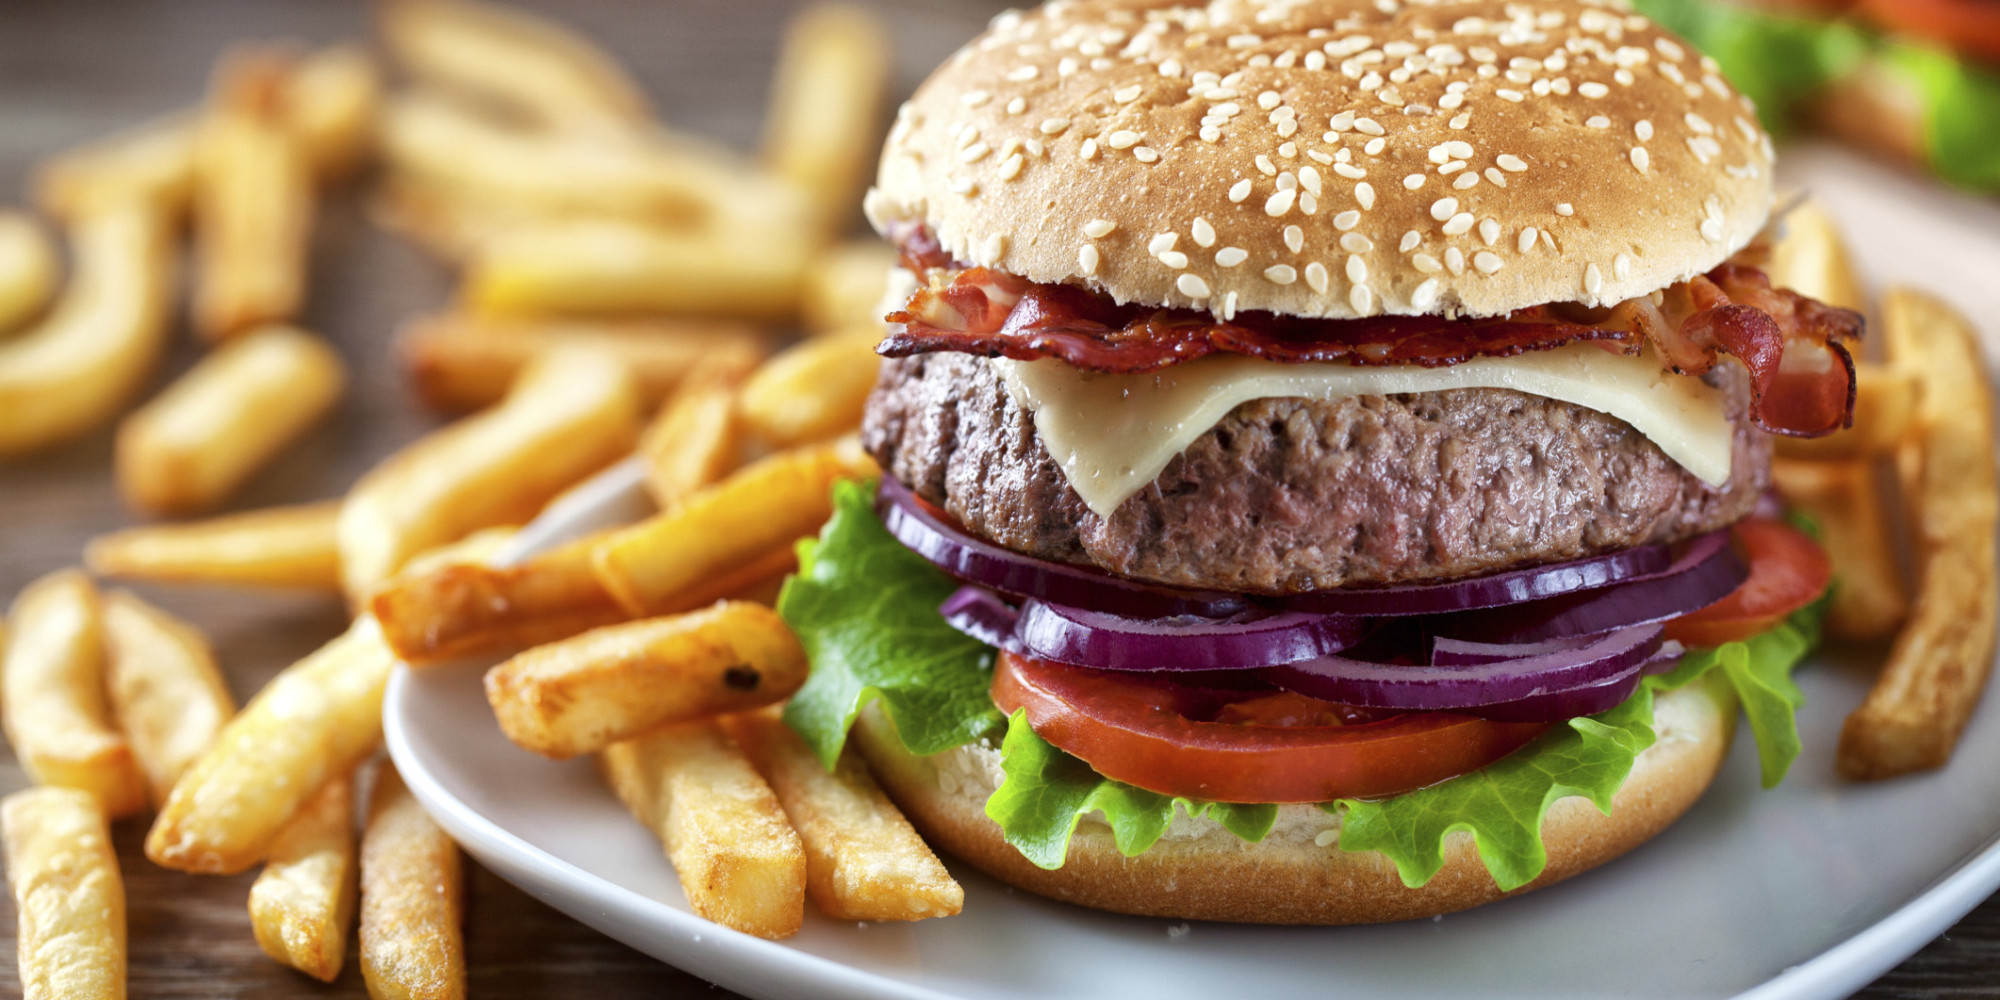 Burgers & Fries – The Marketplace Eatery  |Cheeseburger And Fries